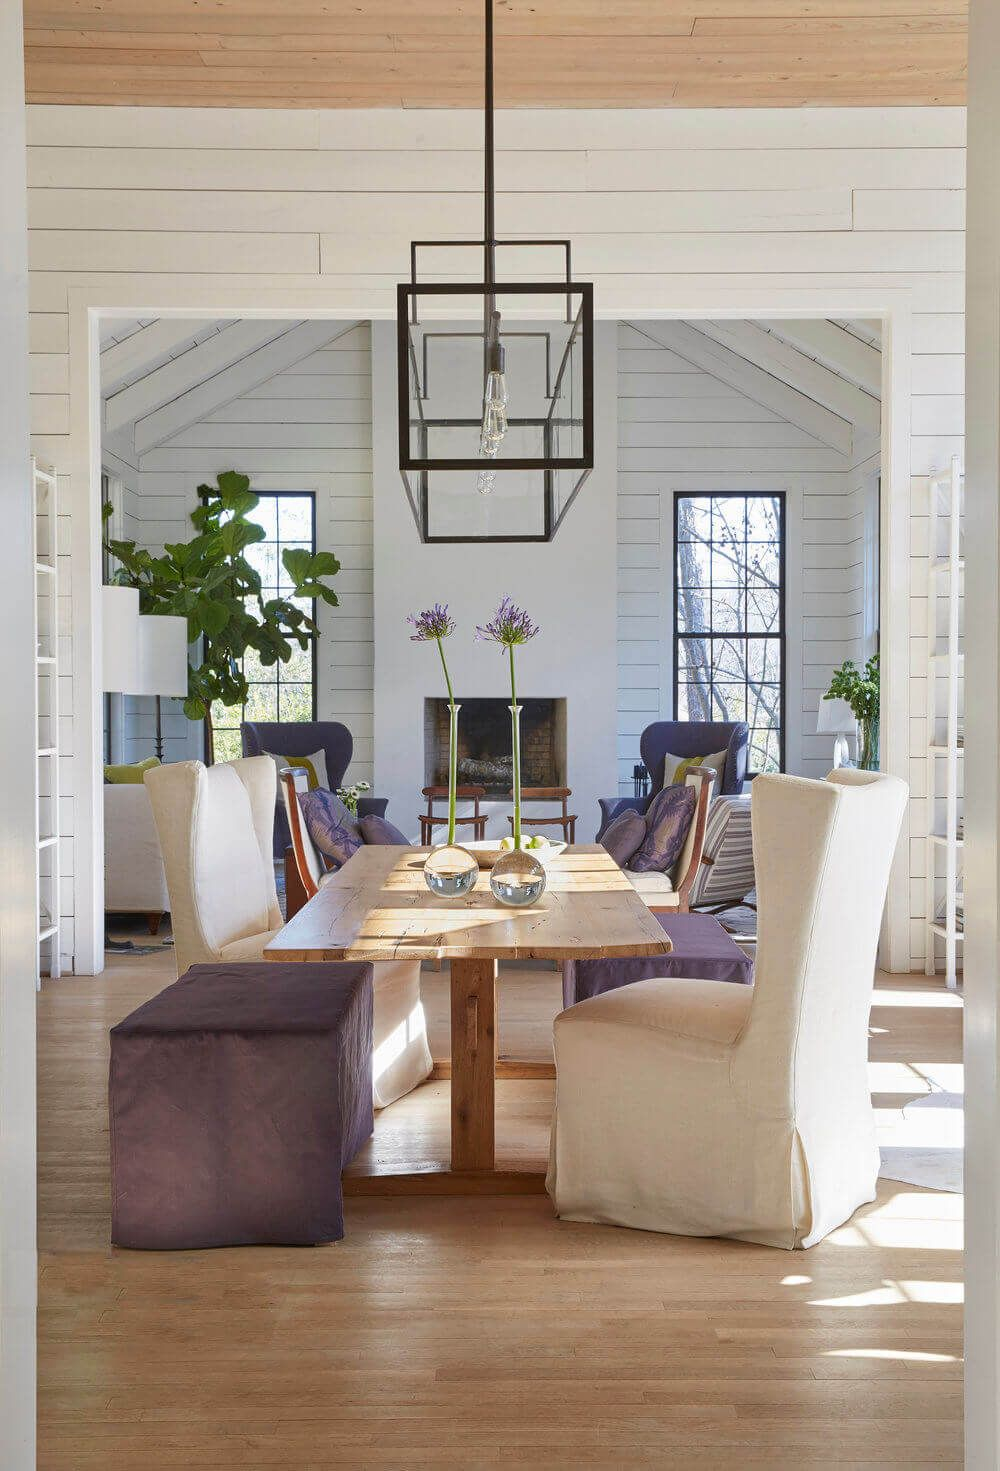 Shabby Chic Dining Room Design With White Panel Walls And Mismatched  Dinning Room Chairs And Hanging